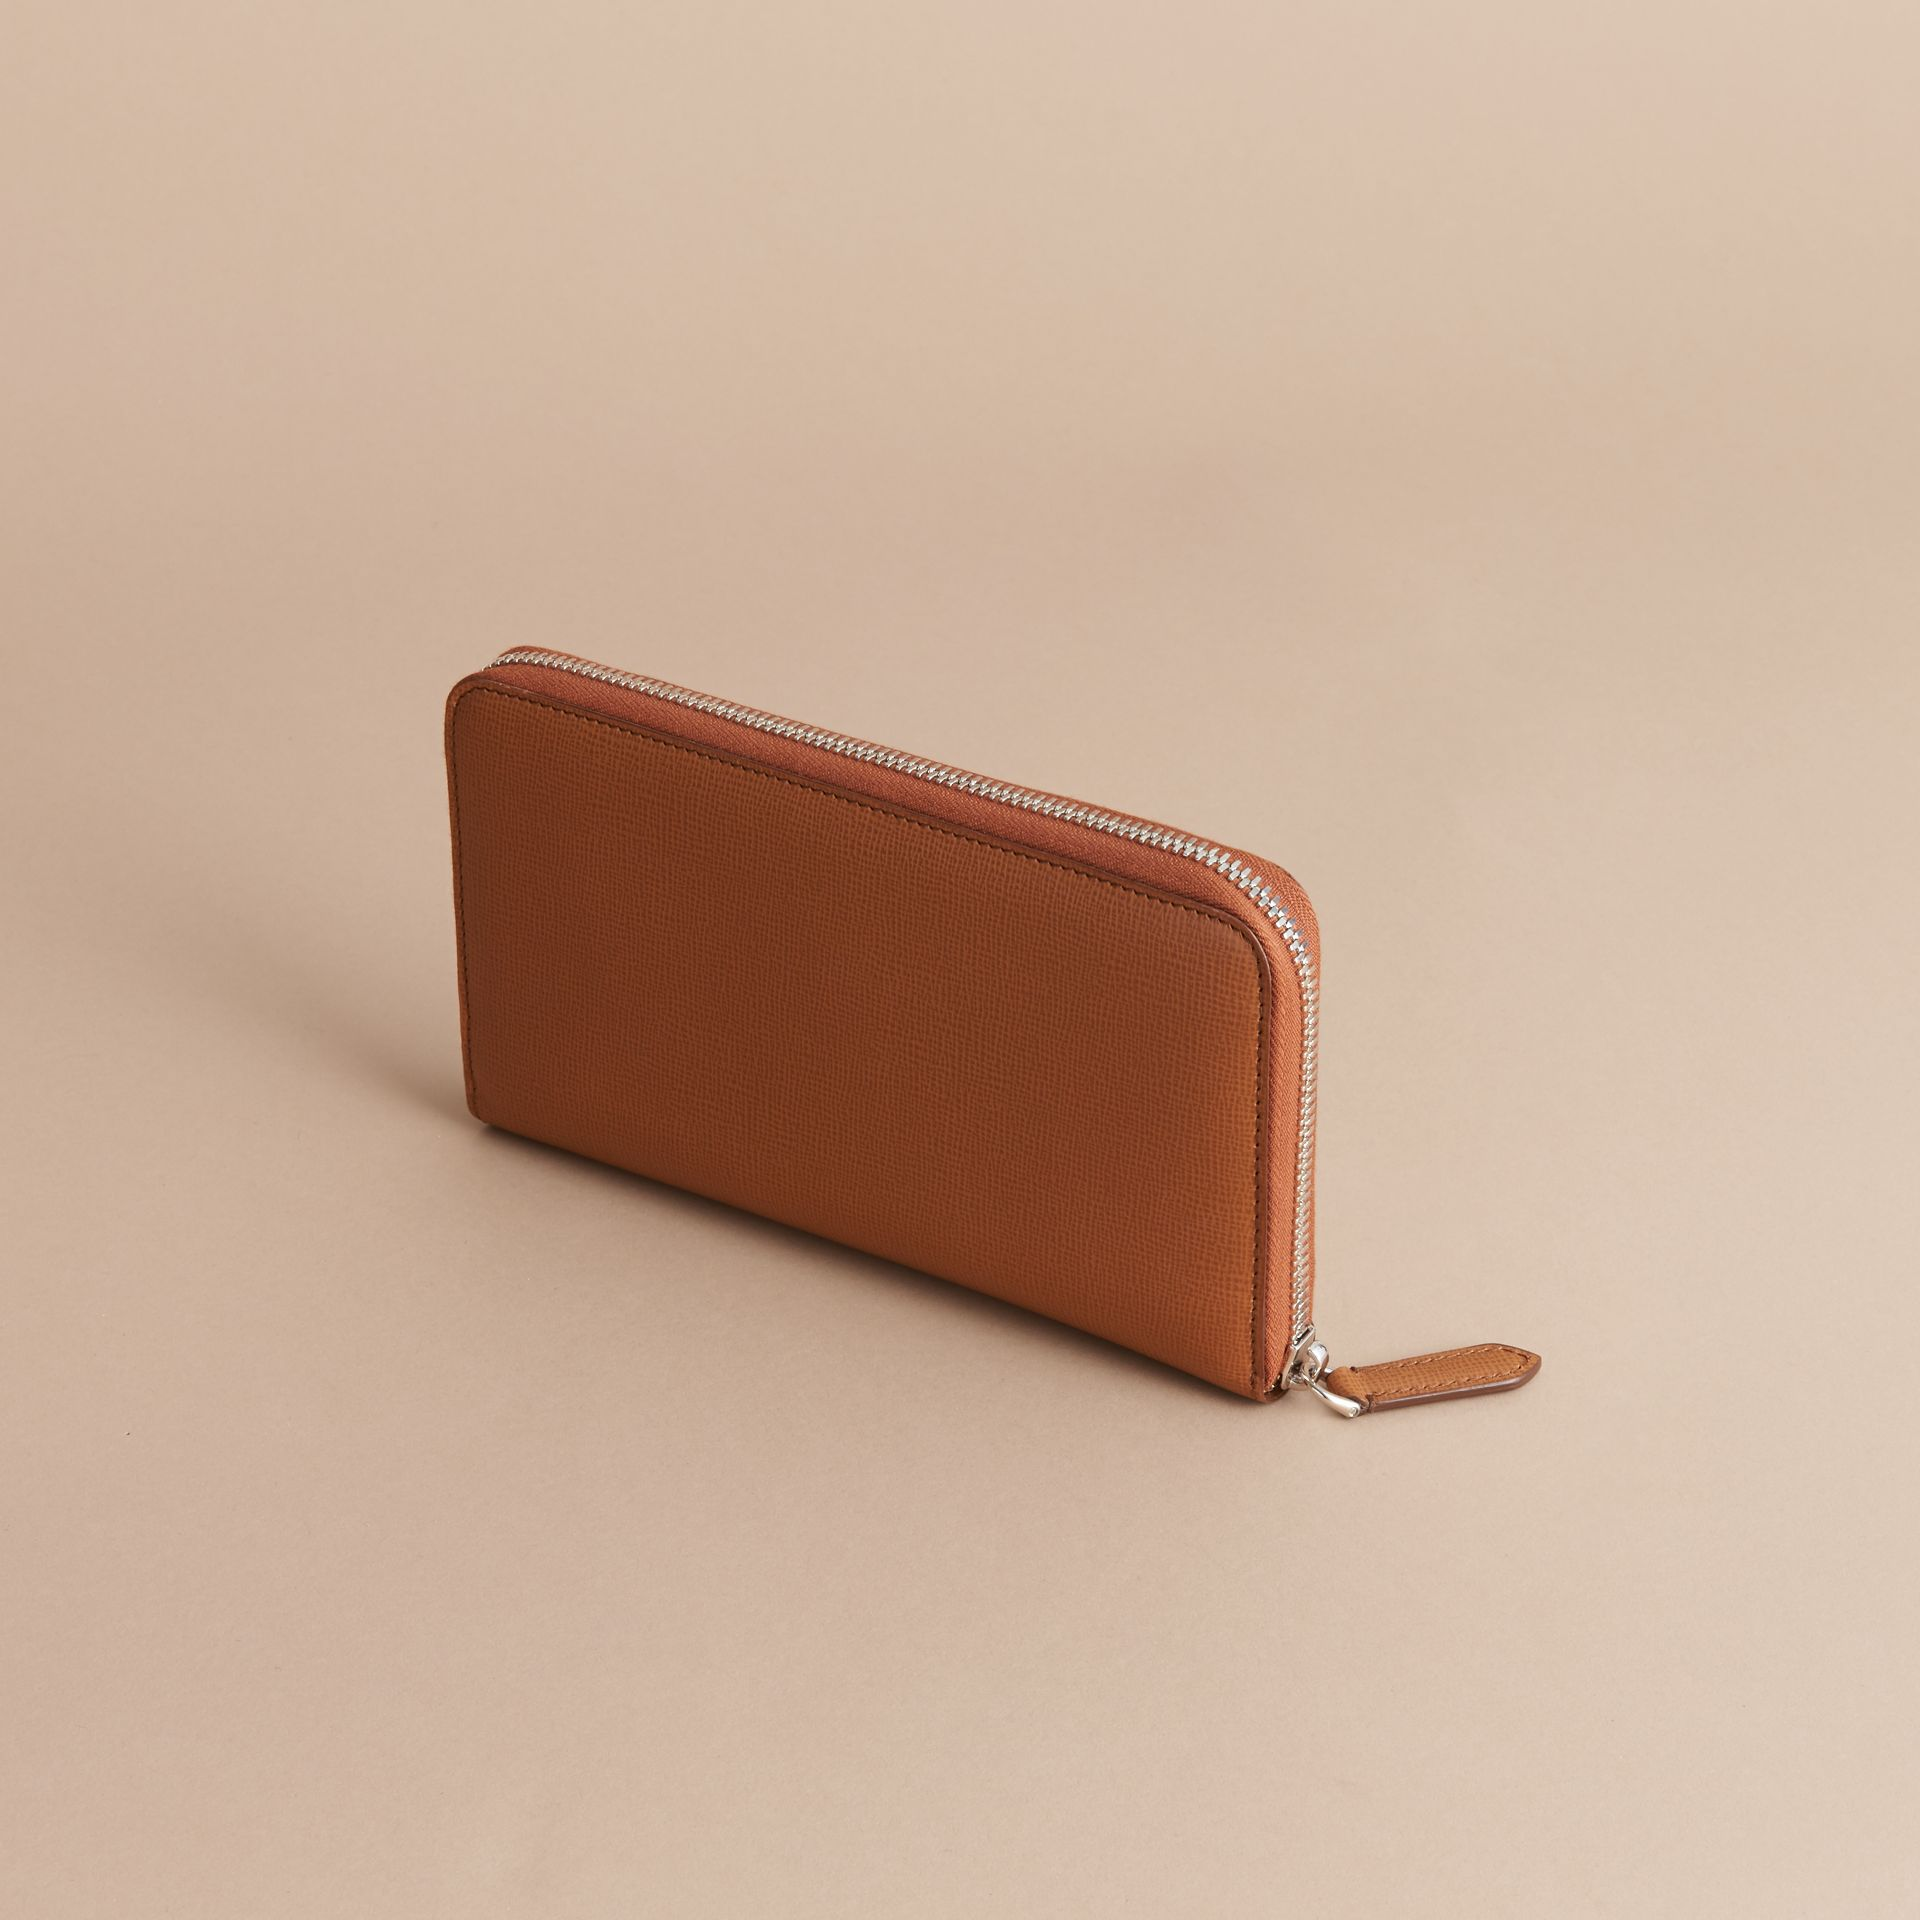 London Leather Ziparound Wallet in Tan | Burberry Australia - gallery image 4